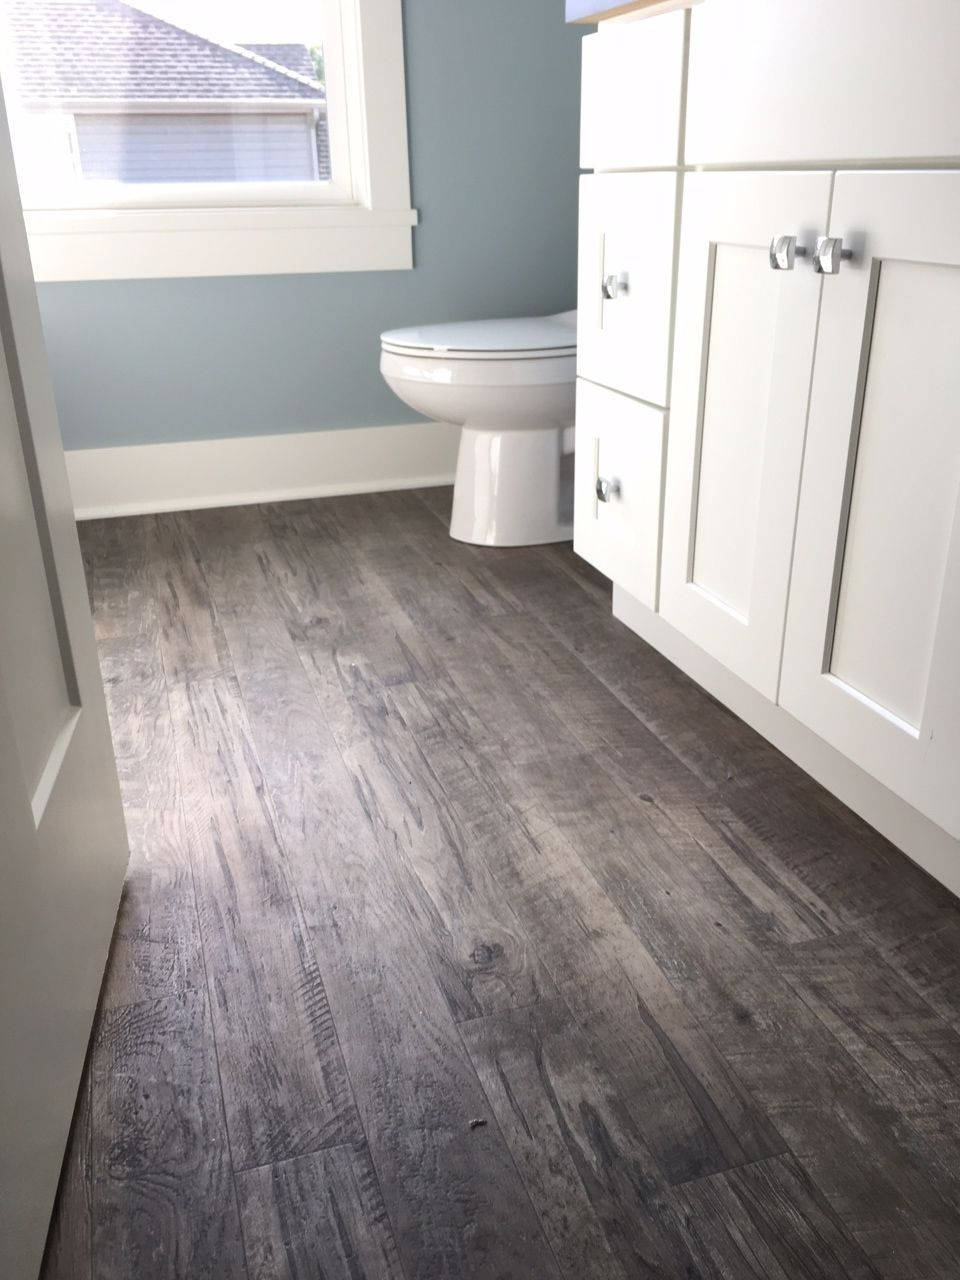 51 Old Fashioned Wood Flooring In Bathroom Composition Wood Flooring In Bathroom Rustic Moder Hardwood Floor Colors Wood Floors Wide Plank Wood Floor Bathroom